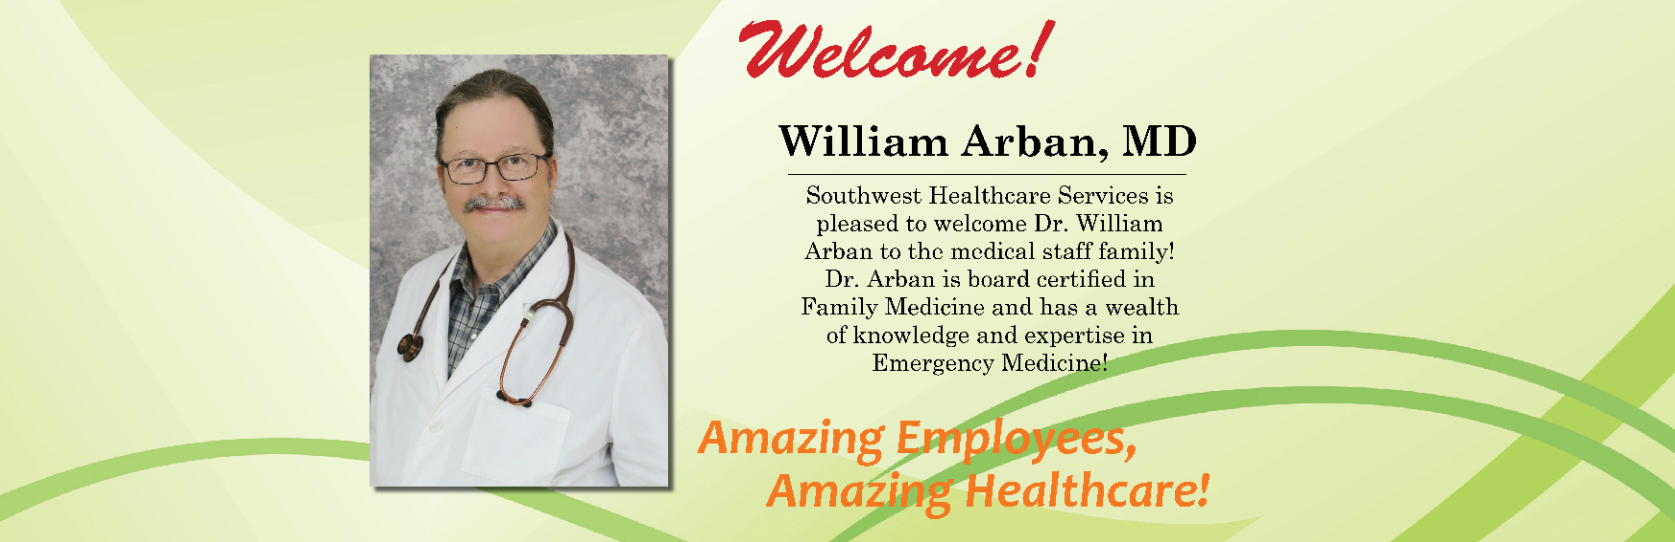 Dr. Arban welcome